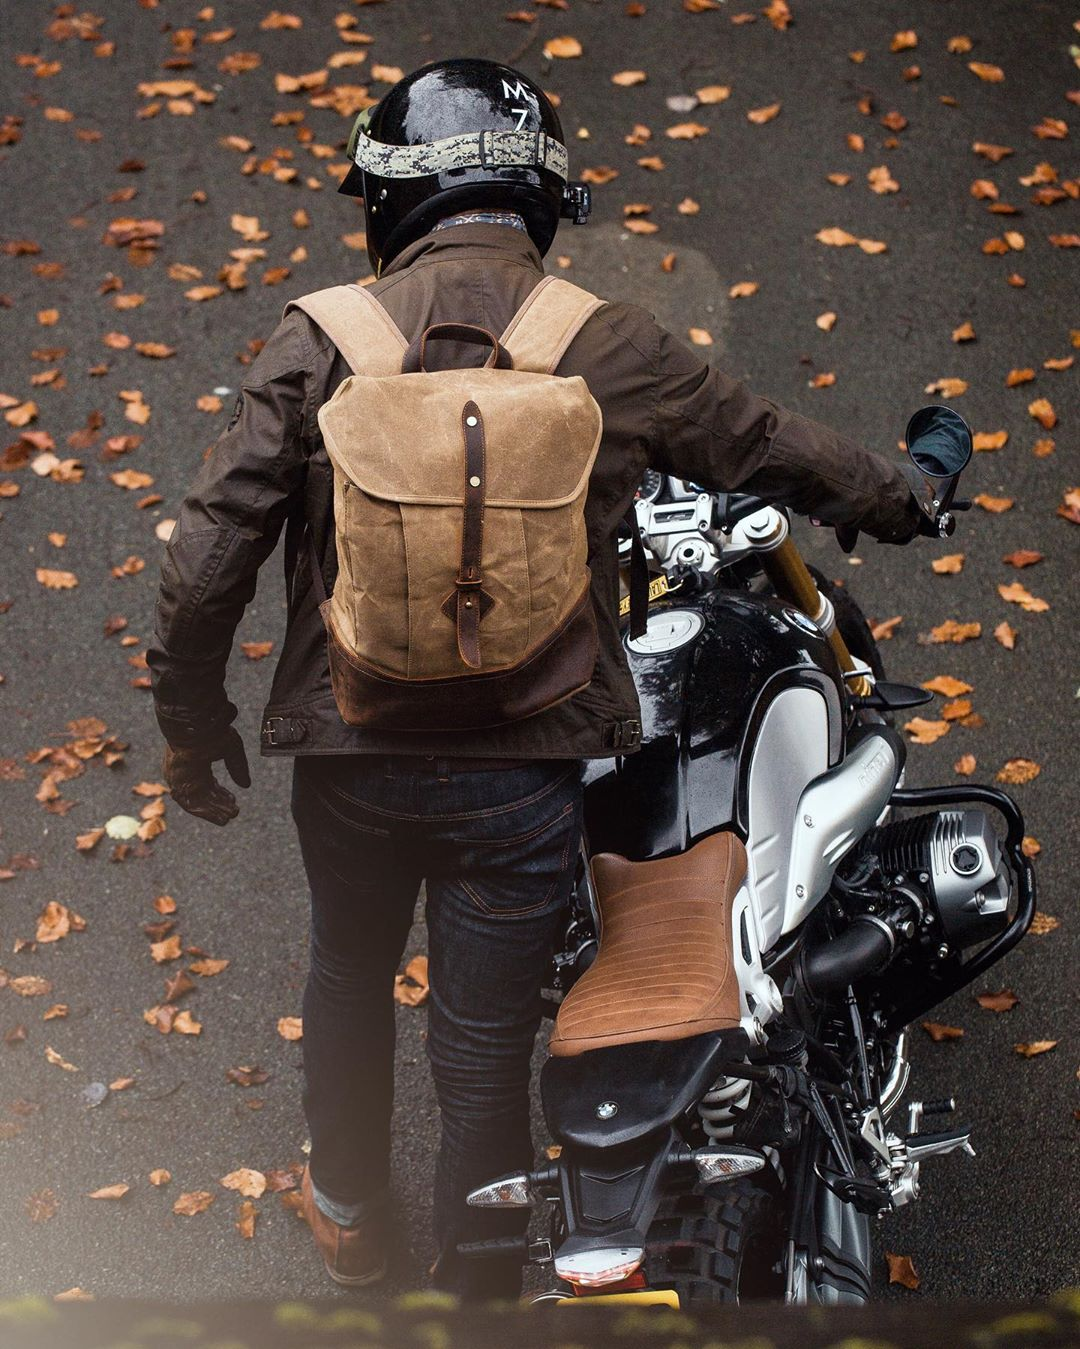 Waxed Cotton Canvas and Leather Backpack Rucksack - Menswear Denim Rugged Style Outfit Cafe Racer Explore Expedition Motorbike Tour - The Kingston in Sandstone by Oldfield - Photo by Ricky Phoolka